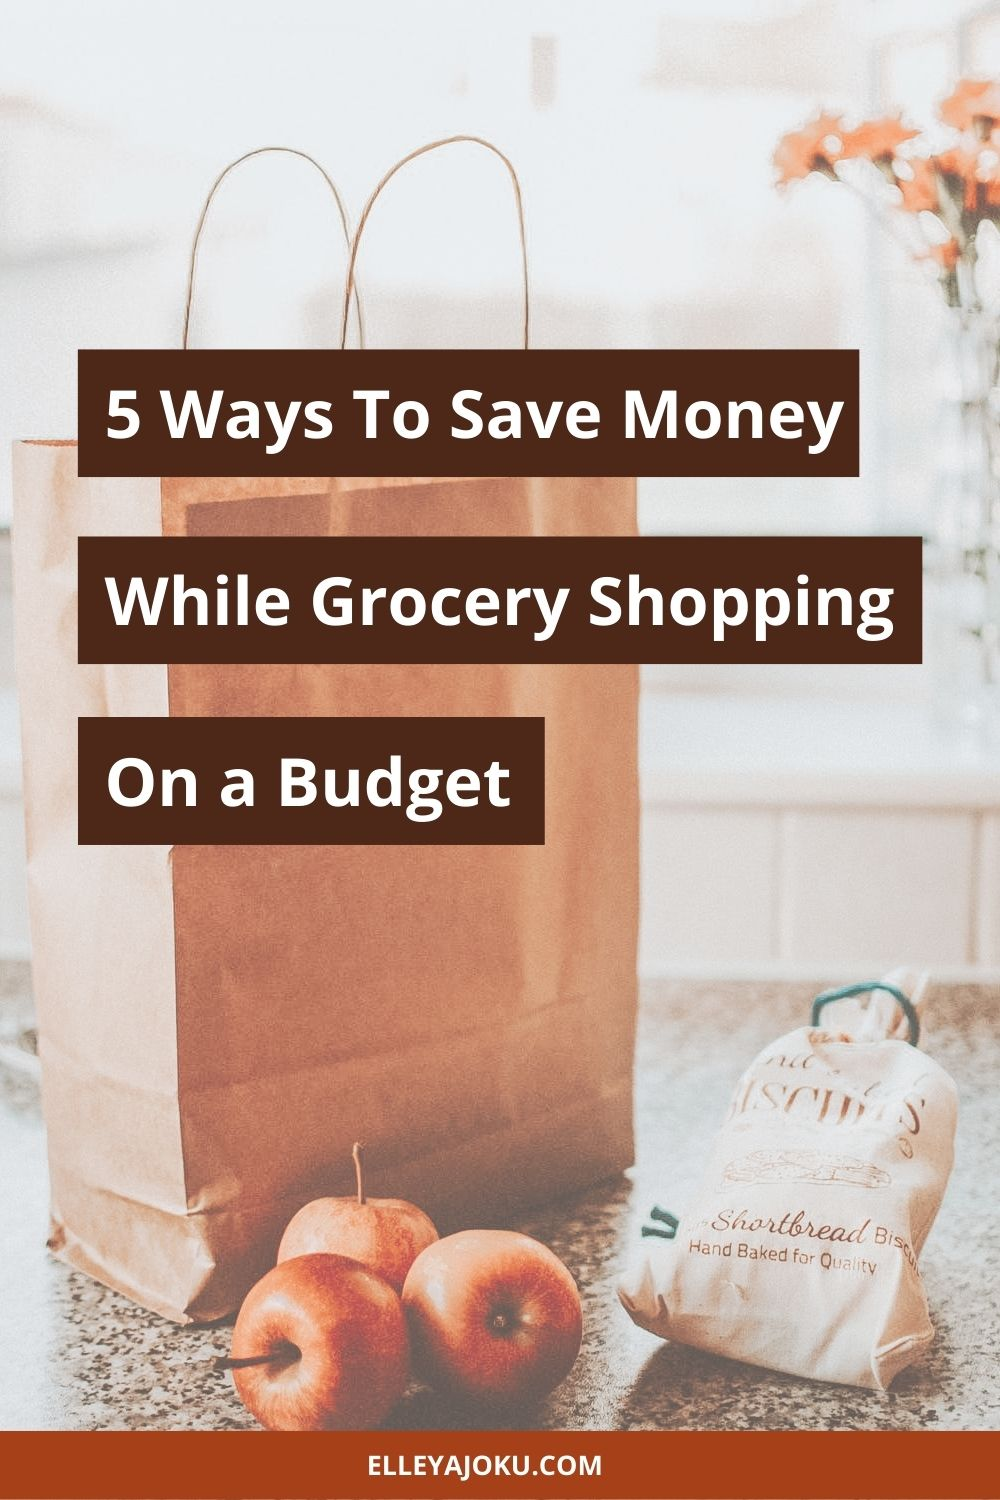 Grocery shopping on a budget pin - Grocery Shopping On A Budget? Here's 5 Ways To Save